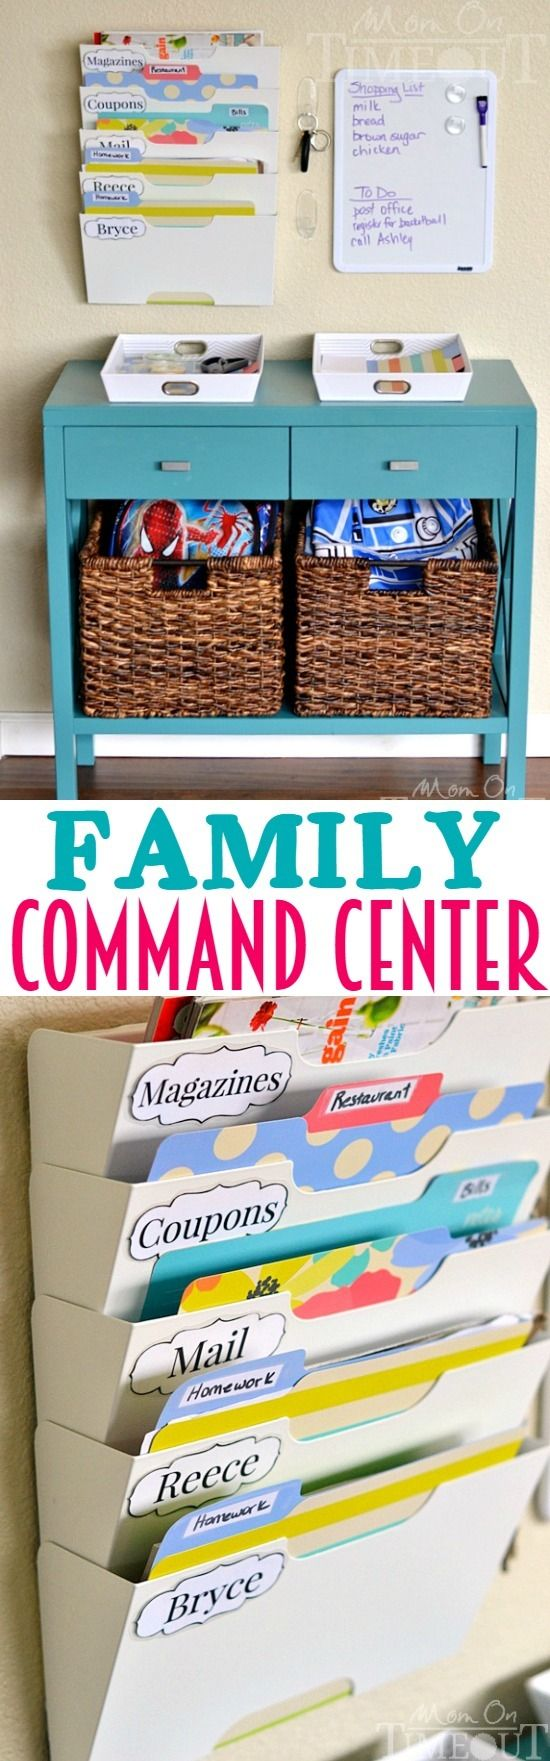 """<a href=""""http://www.momontimeout.com/2015/01/diy-family-command-center/"""" target=""""_blank"""">image source: momontimeout.com</a>"""